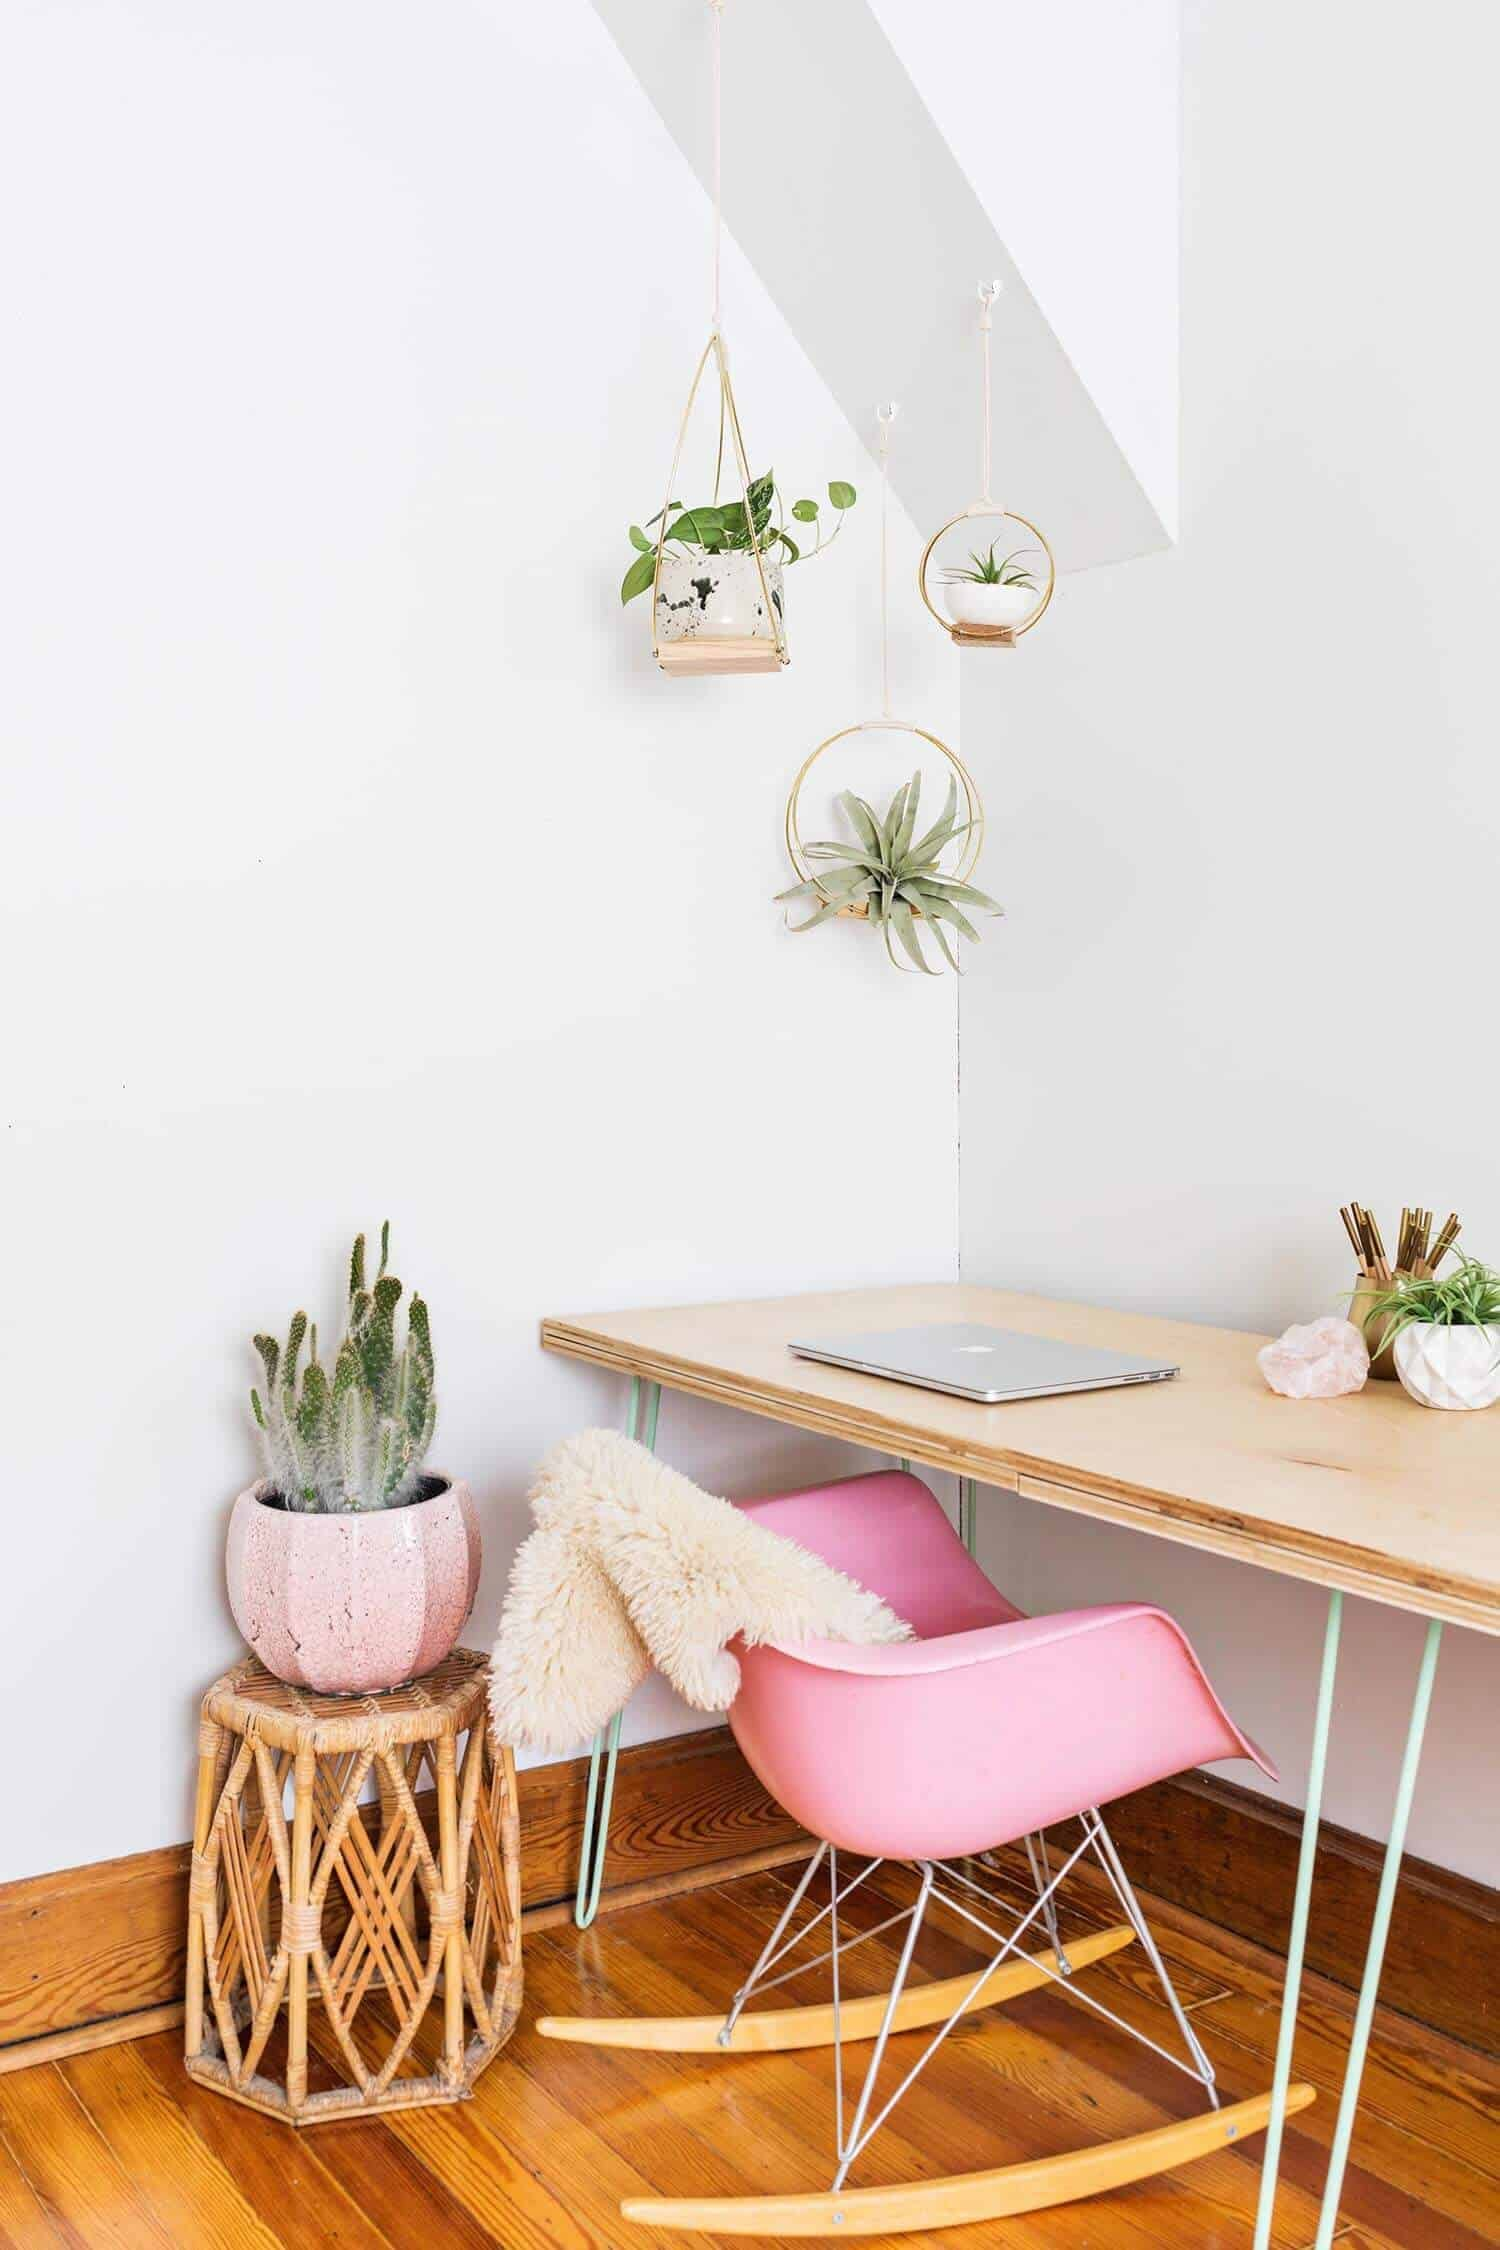 Diy Midcentury Planter 100 Of The Best Diy Gifts For